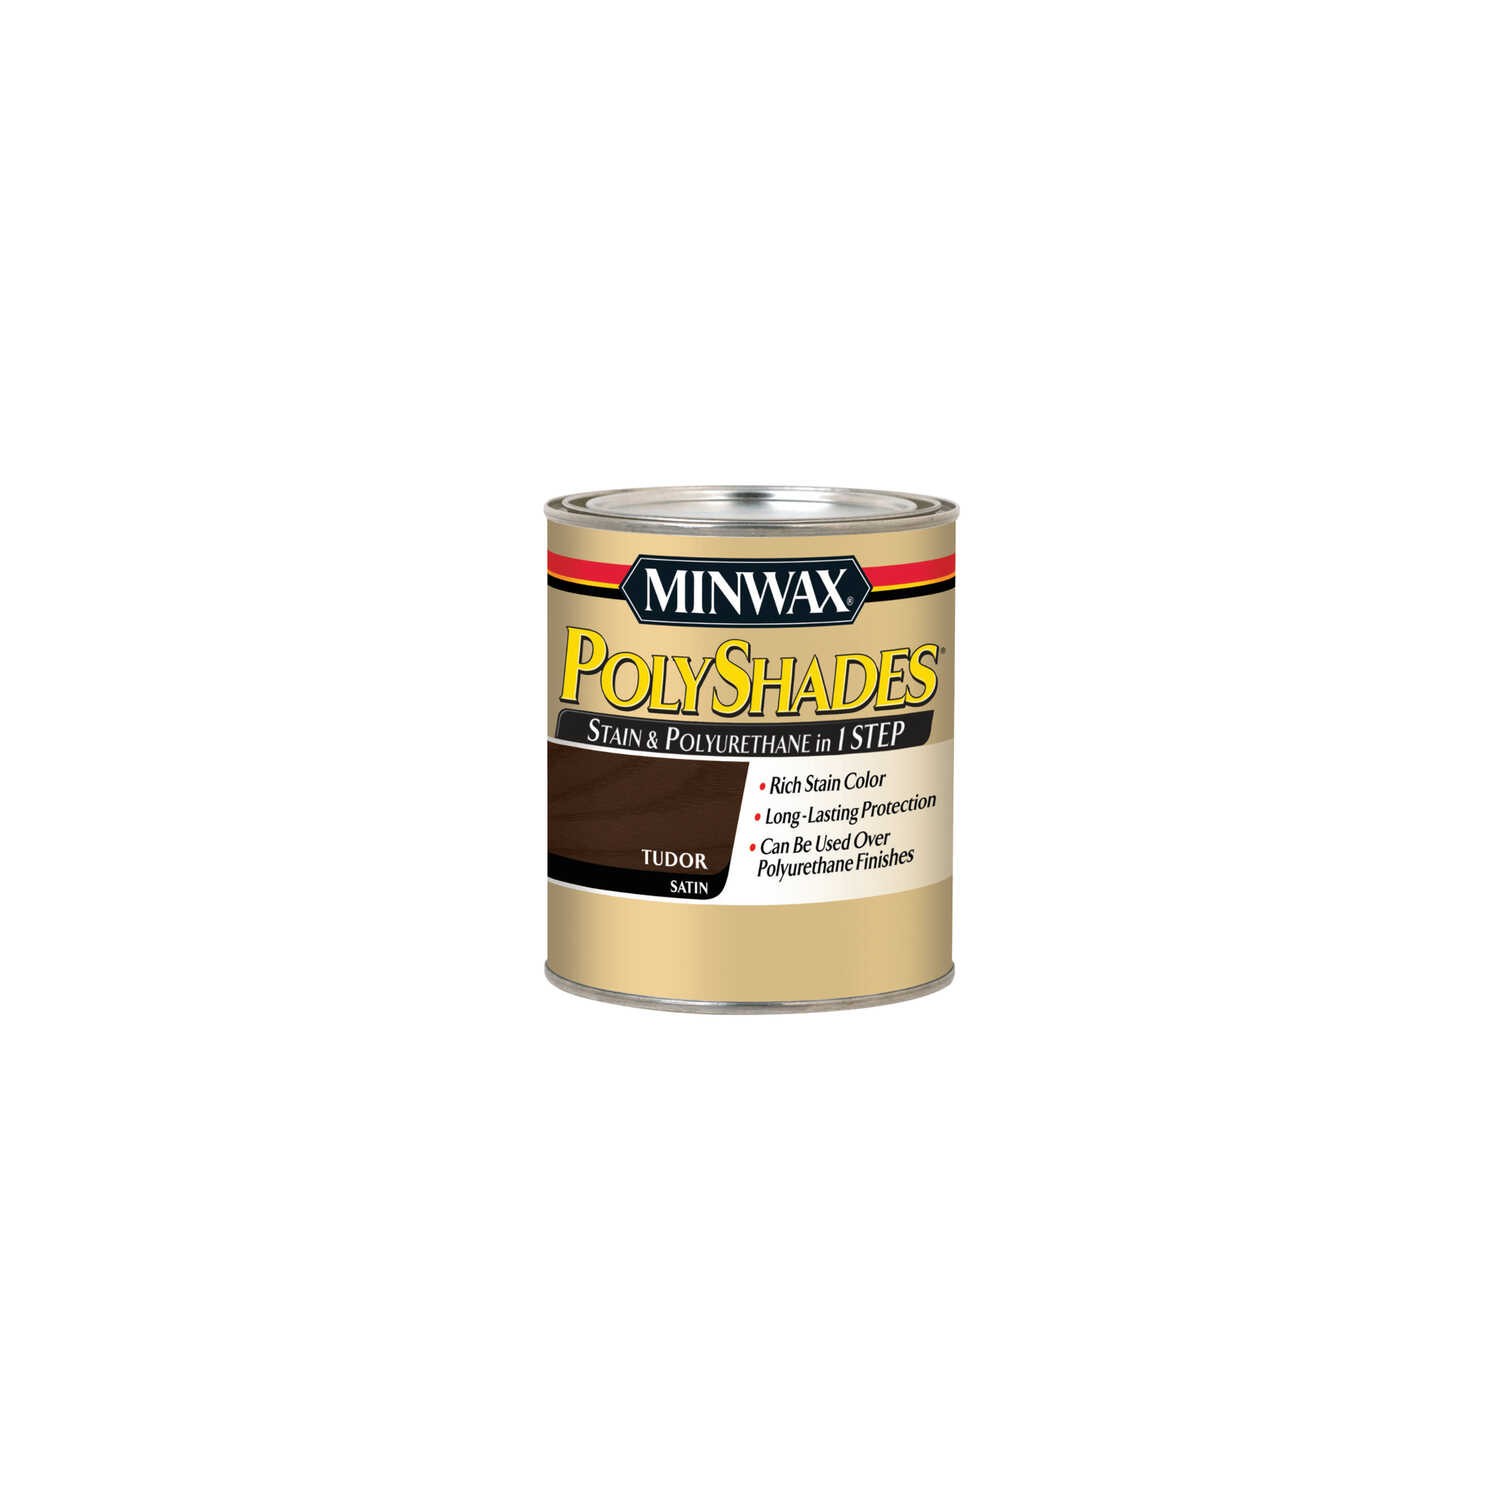 Minwax  PolyShades  Semi-Transparent  Satin  Tudor  Oil-Based  Stain  0.5 pt.